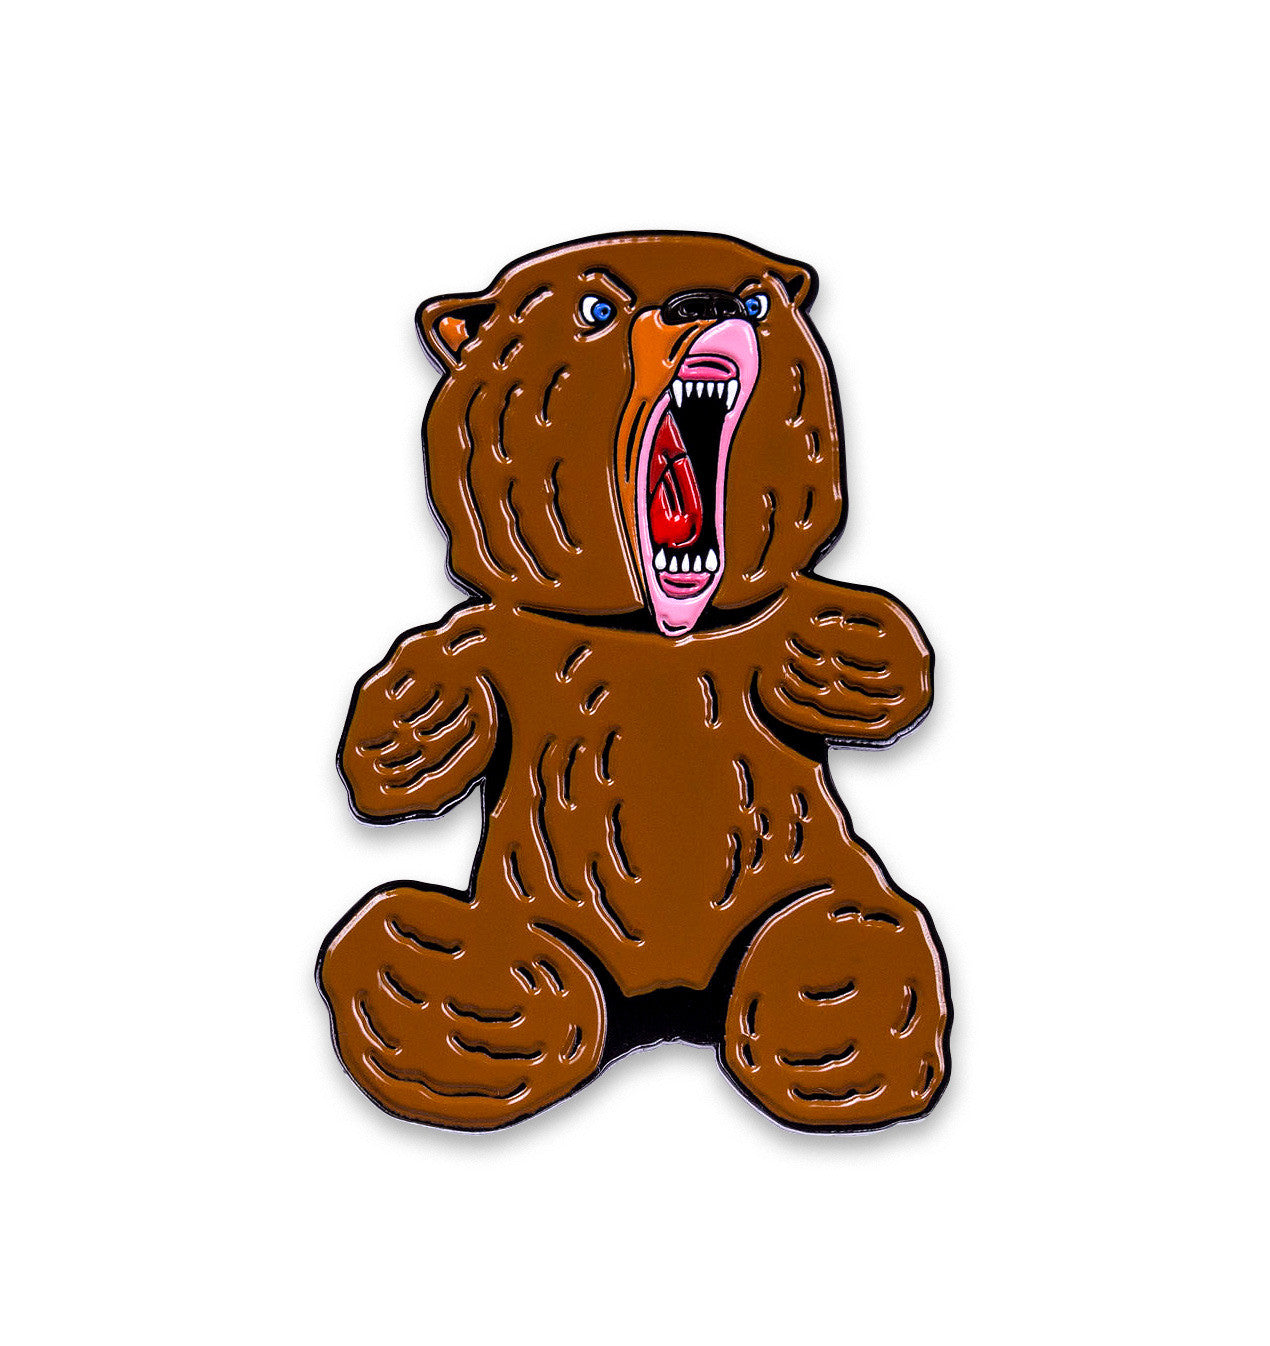 "Teddy bear or Grizzly Bear 2"" Enamel Pin"